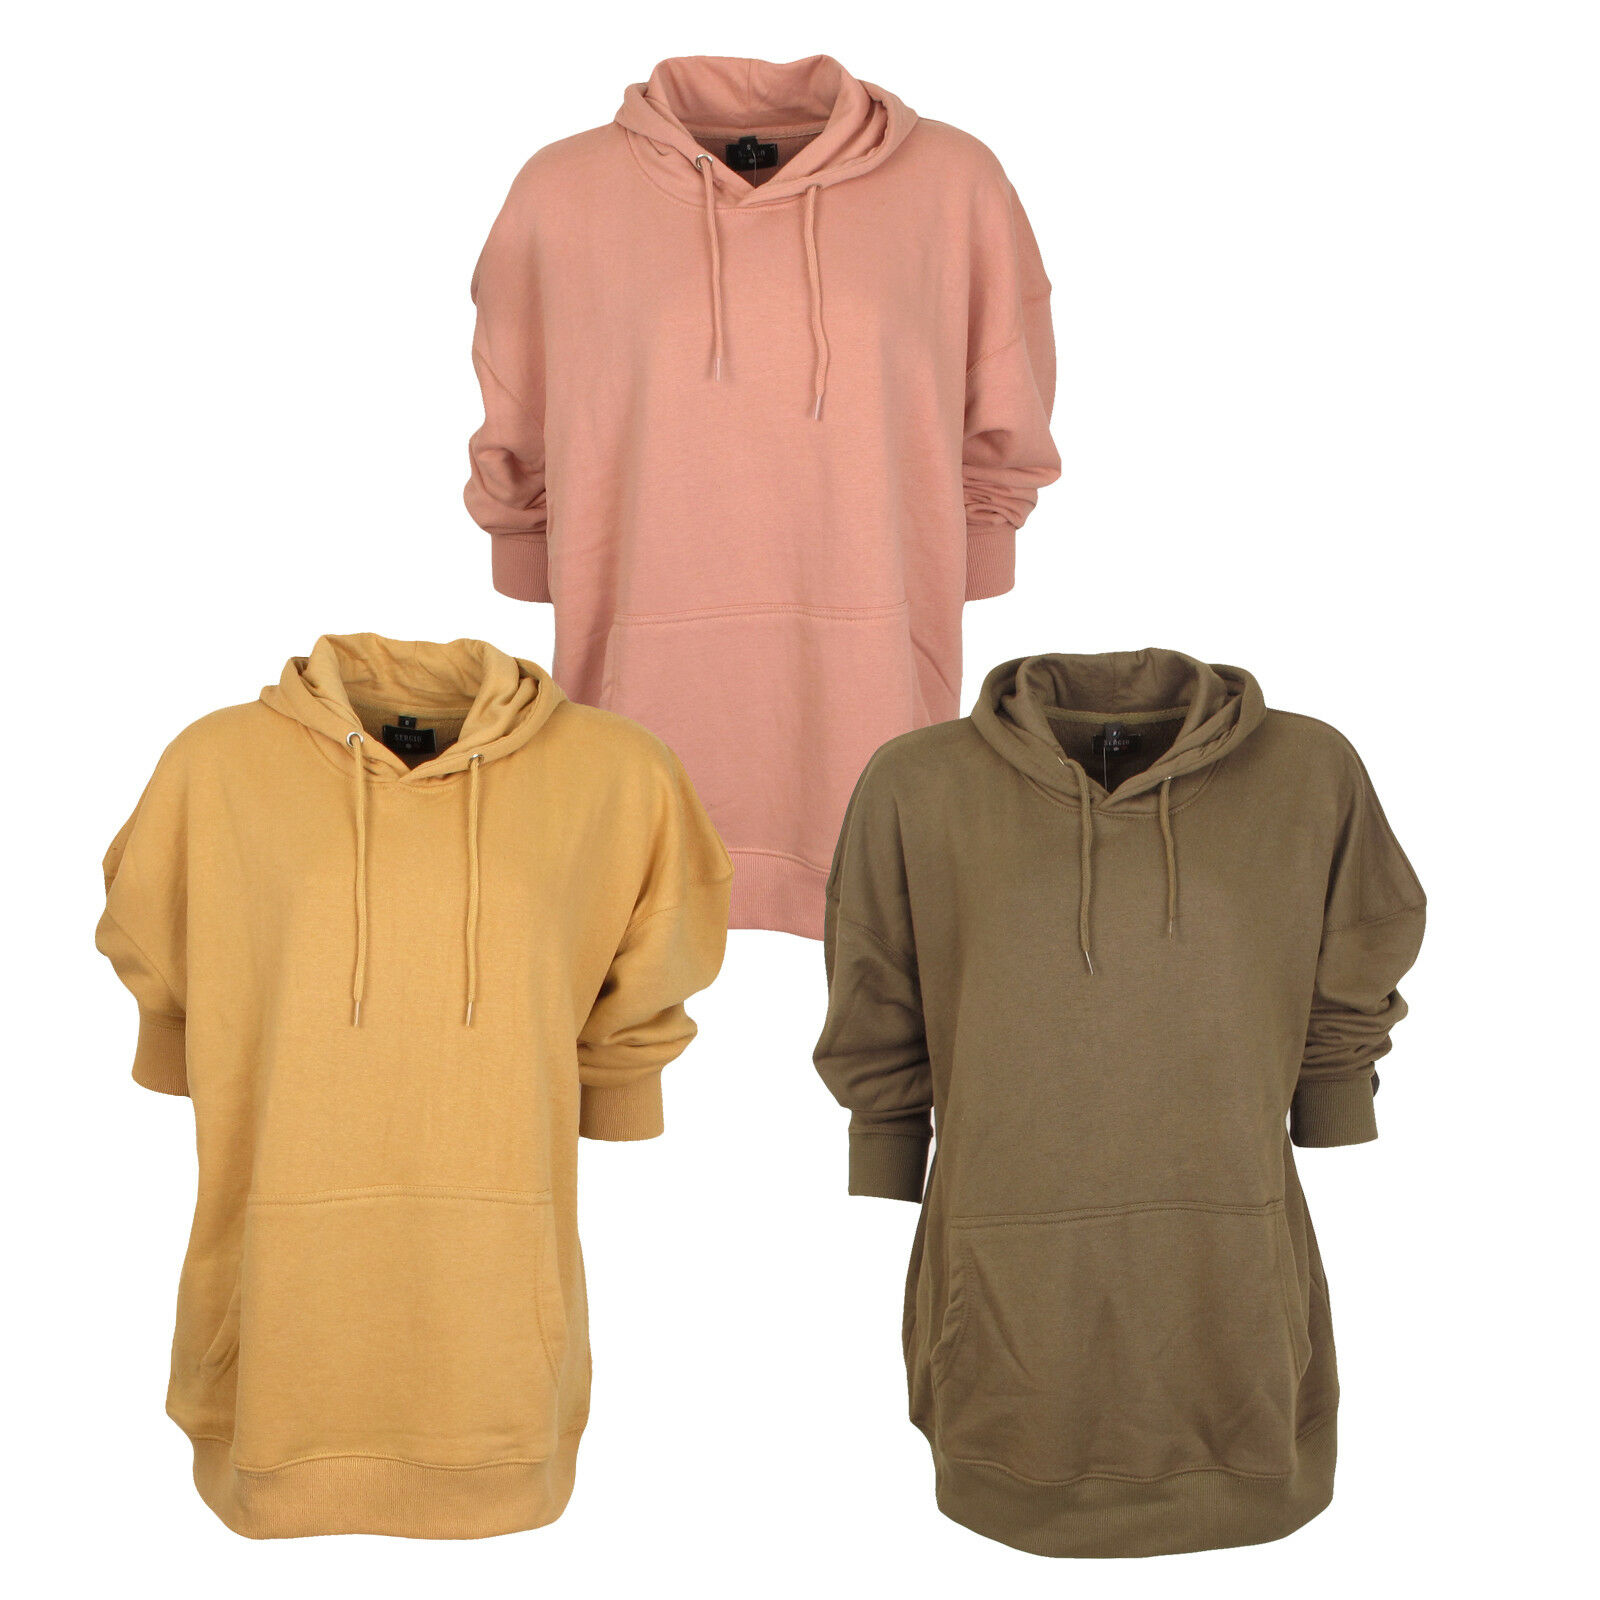 WOMENS BAGGY TOP LADIES GIRLS OVERSIZED LONGLINE HOODED SWEA